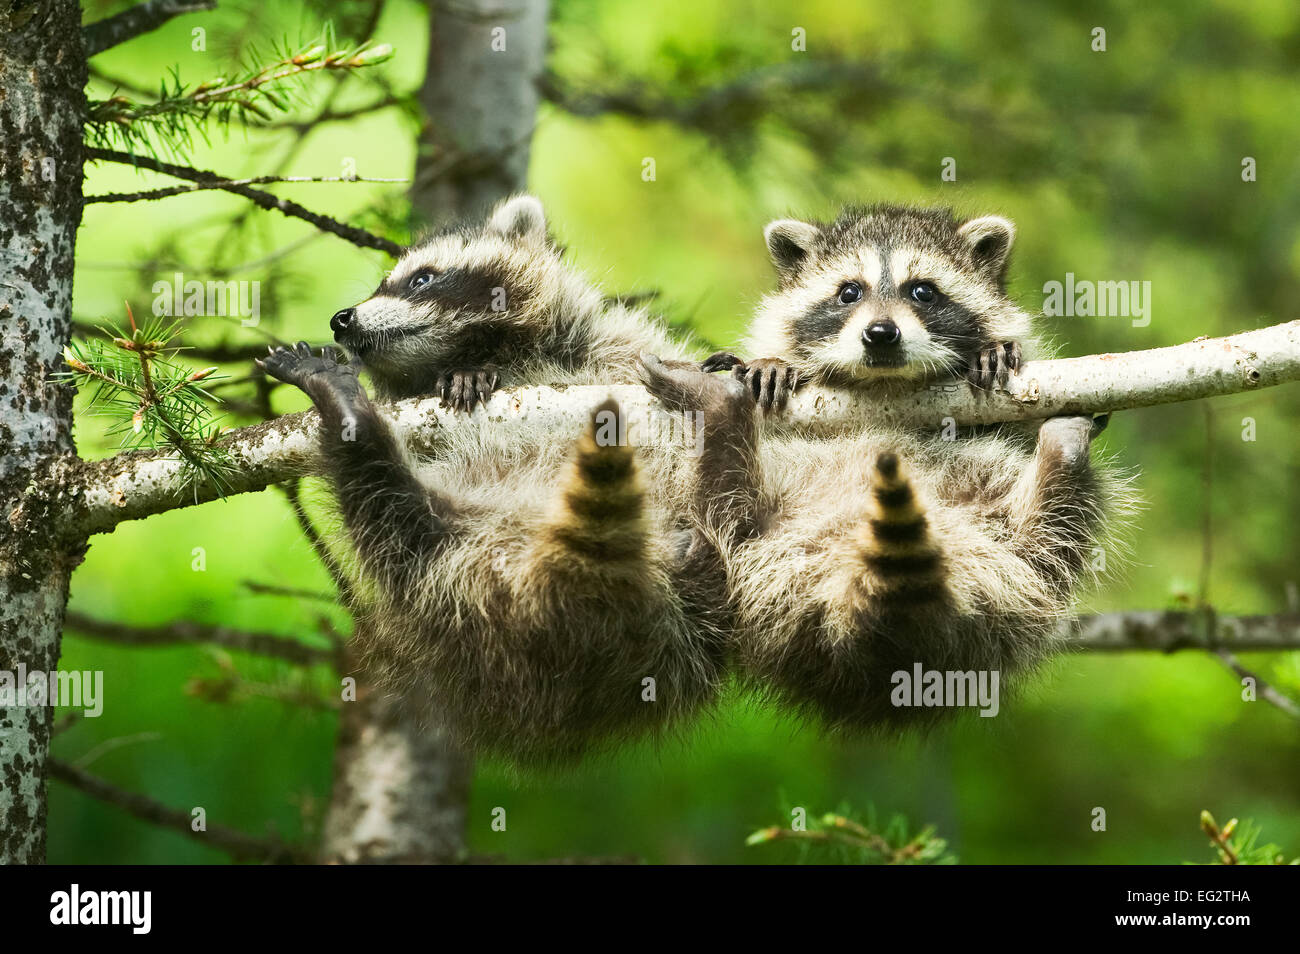 Two baby Common Raccoons (Procyon lotor) precariously grasping a branch on a tree. - Stock Image